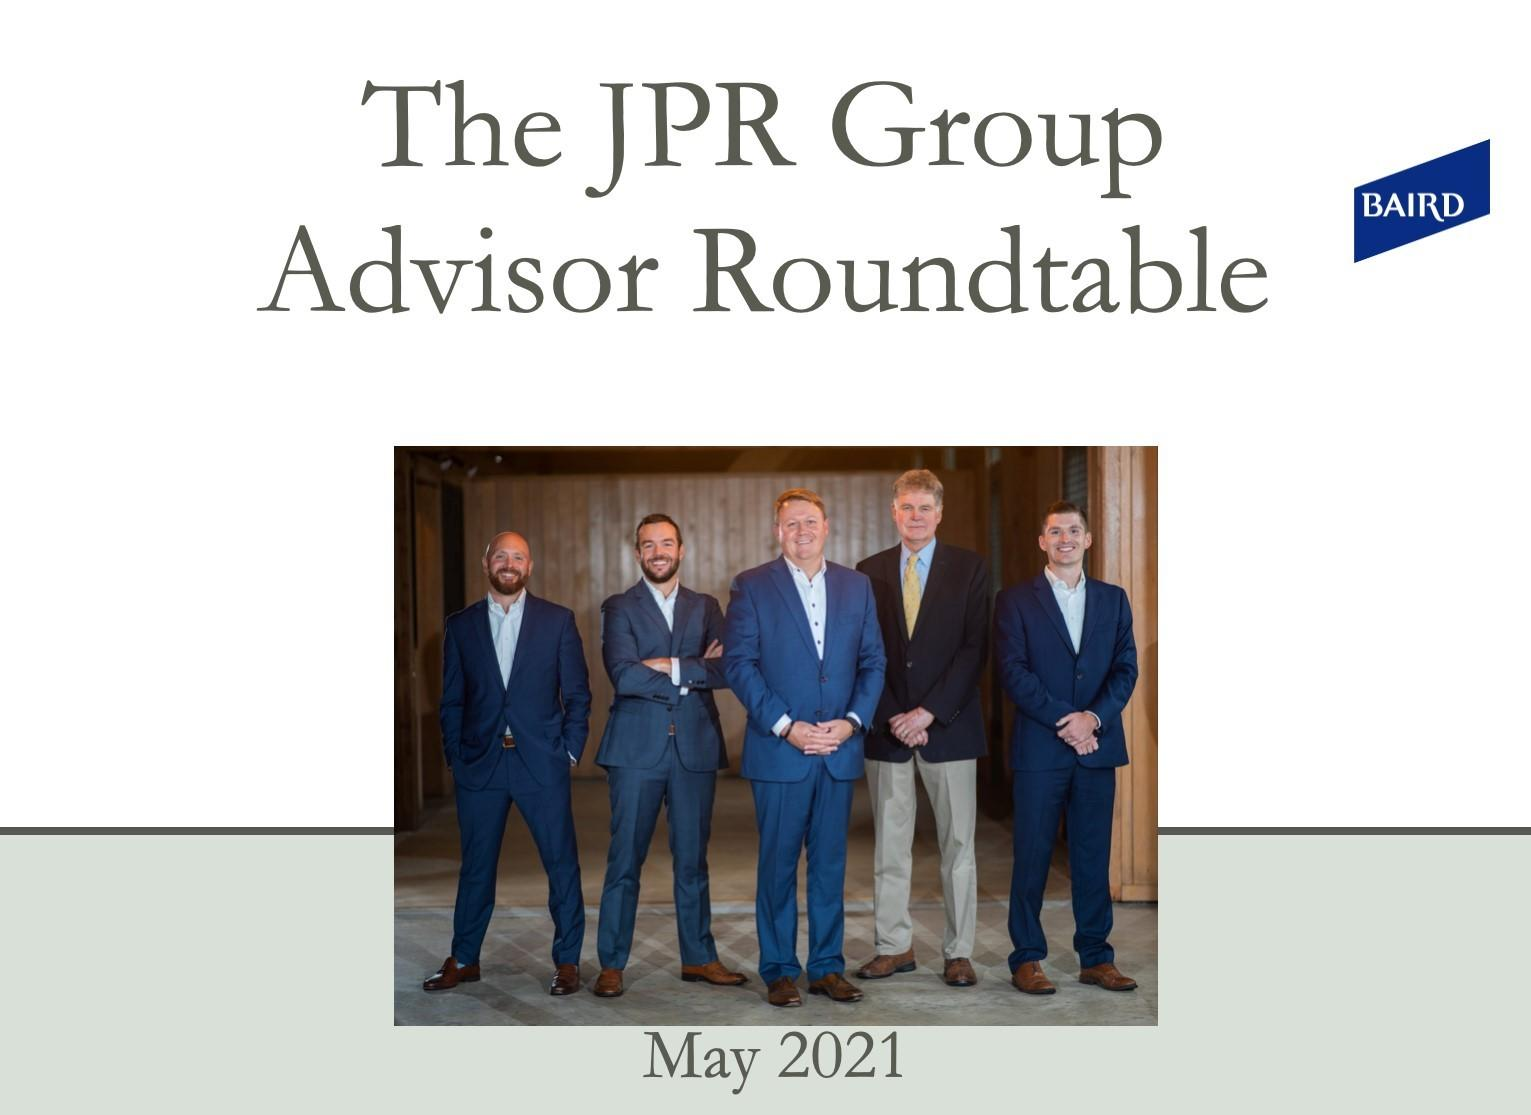 The April Advisor Roundtable Thumbnail